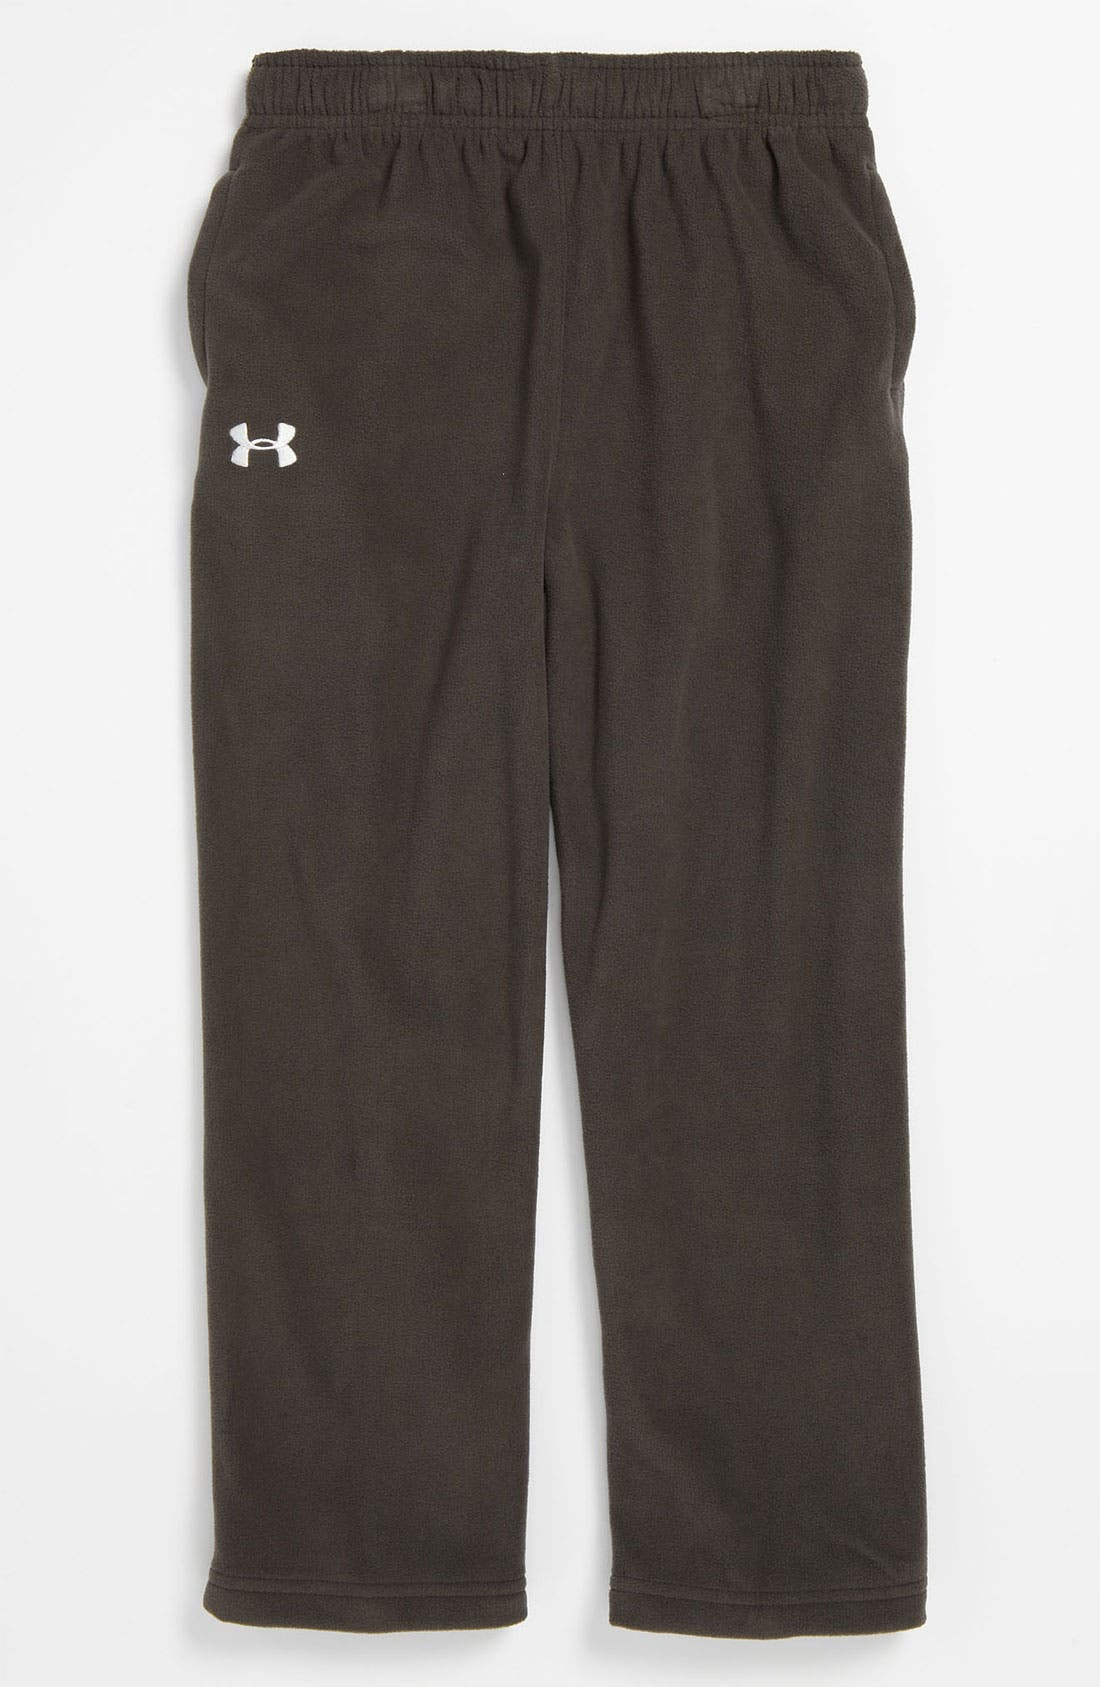 Alternate Image 1 Selected - Under Armour 'Hundo' Pants (Little Boys)